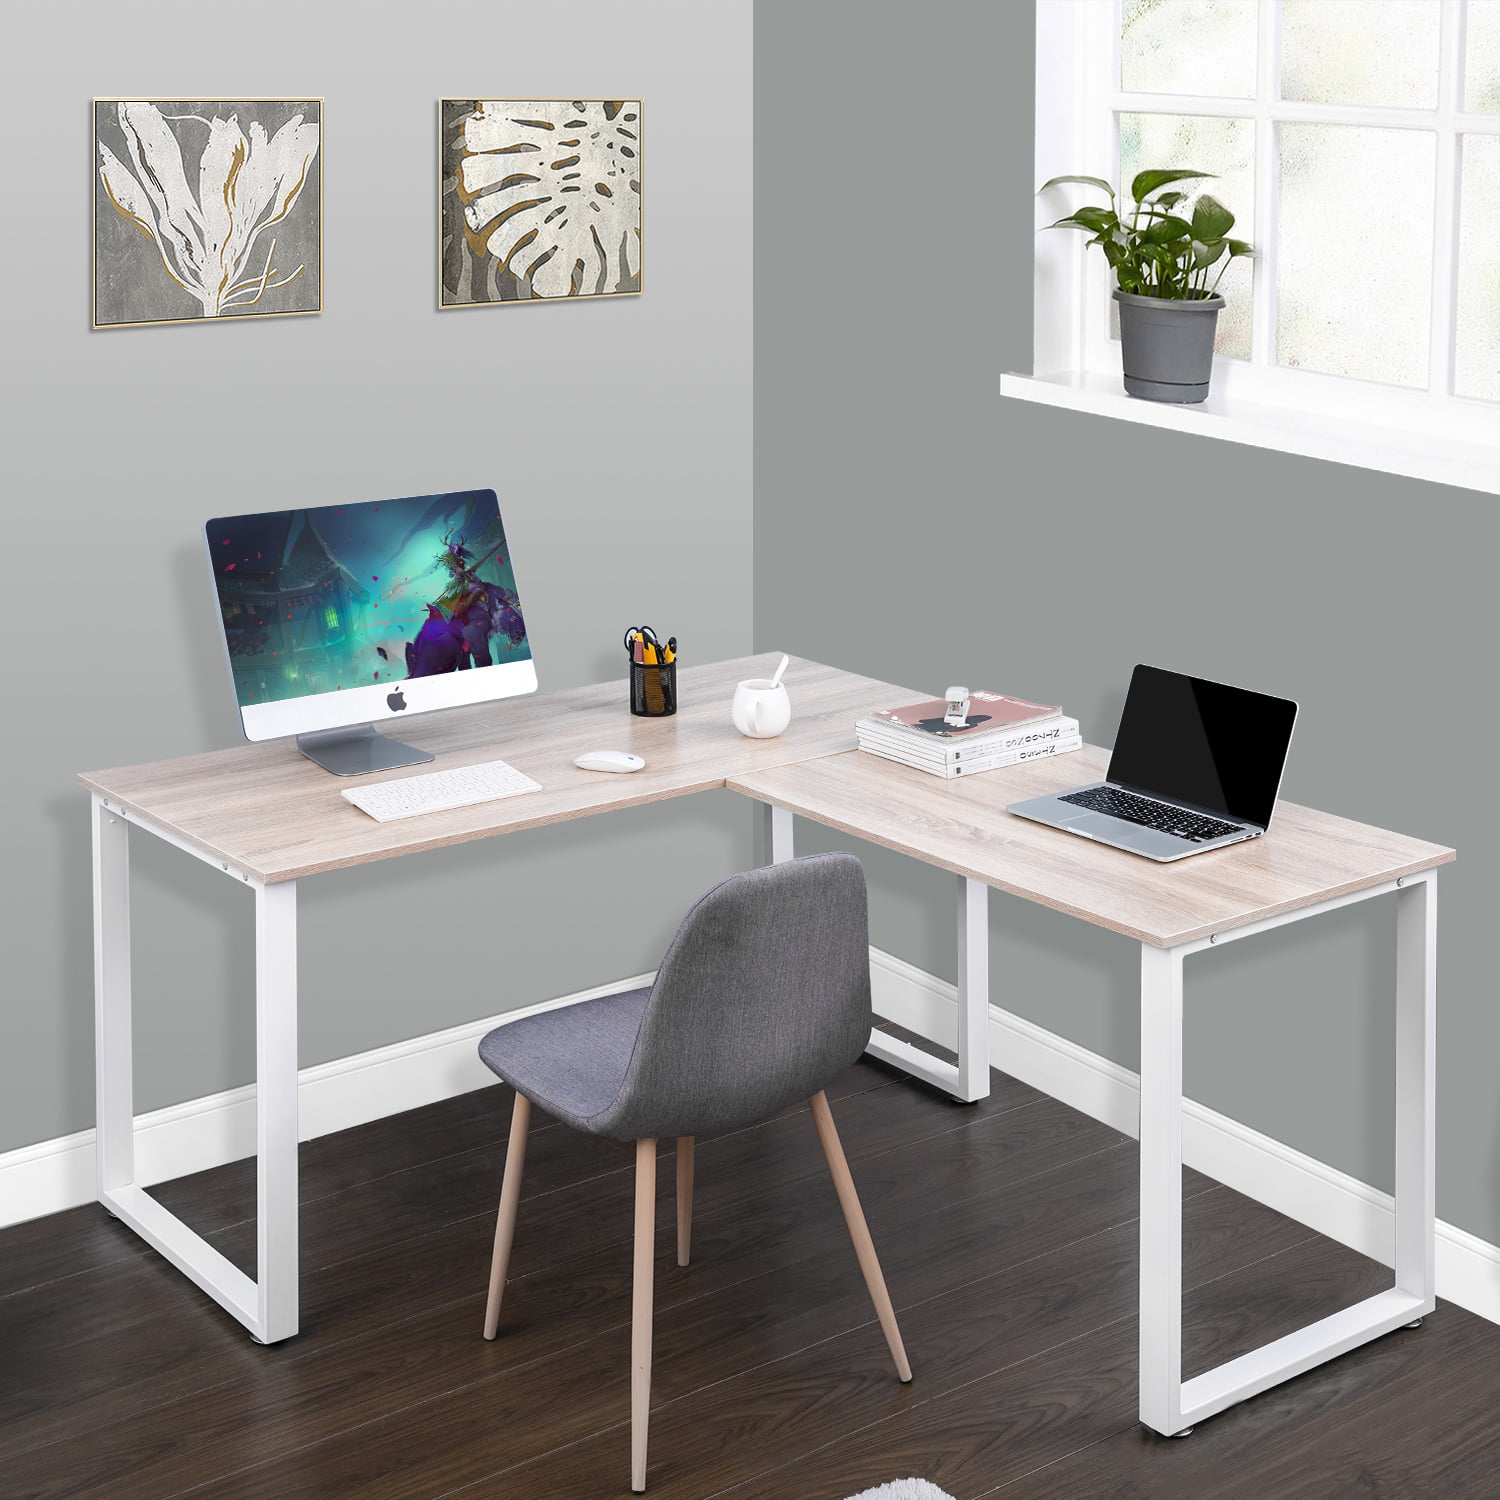 L Shaped Computer Desk Industrial Office Corner Desk 58 Writing Study Table Wood Tabletop Home Gaming Desk With Metal Frame Large 2 Person Table For Home Office Workstation Oak B2240 Walmart Com